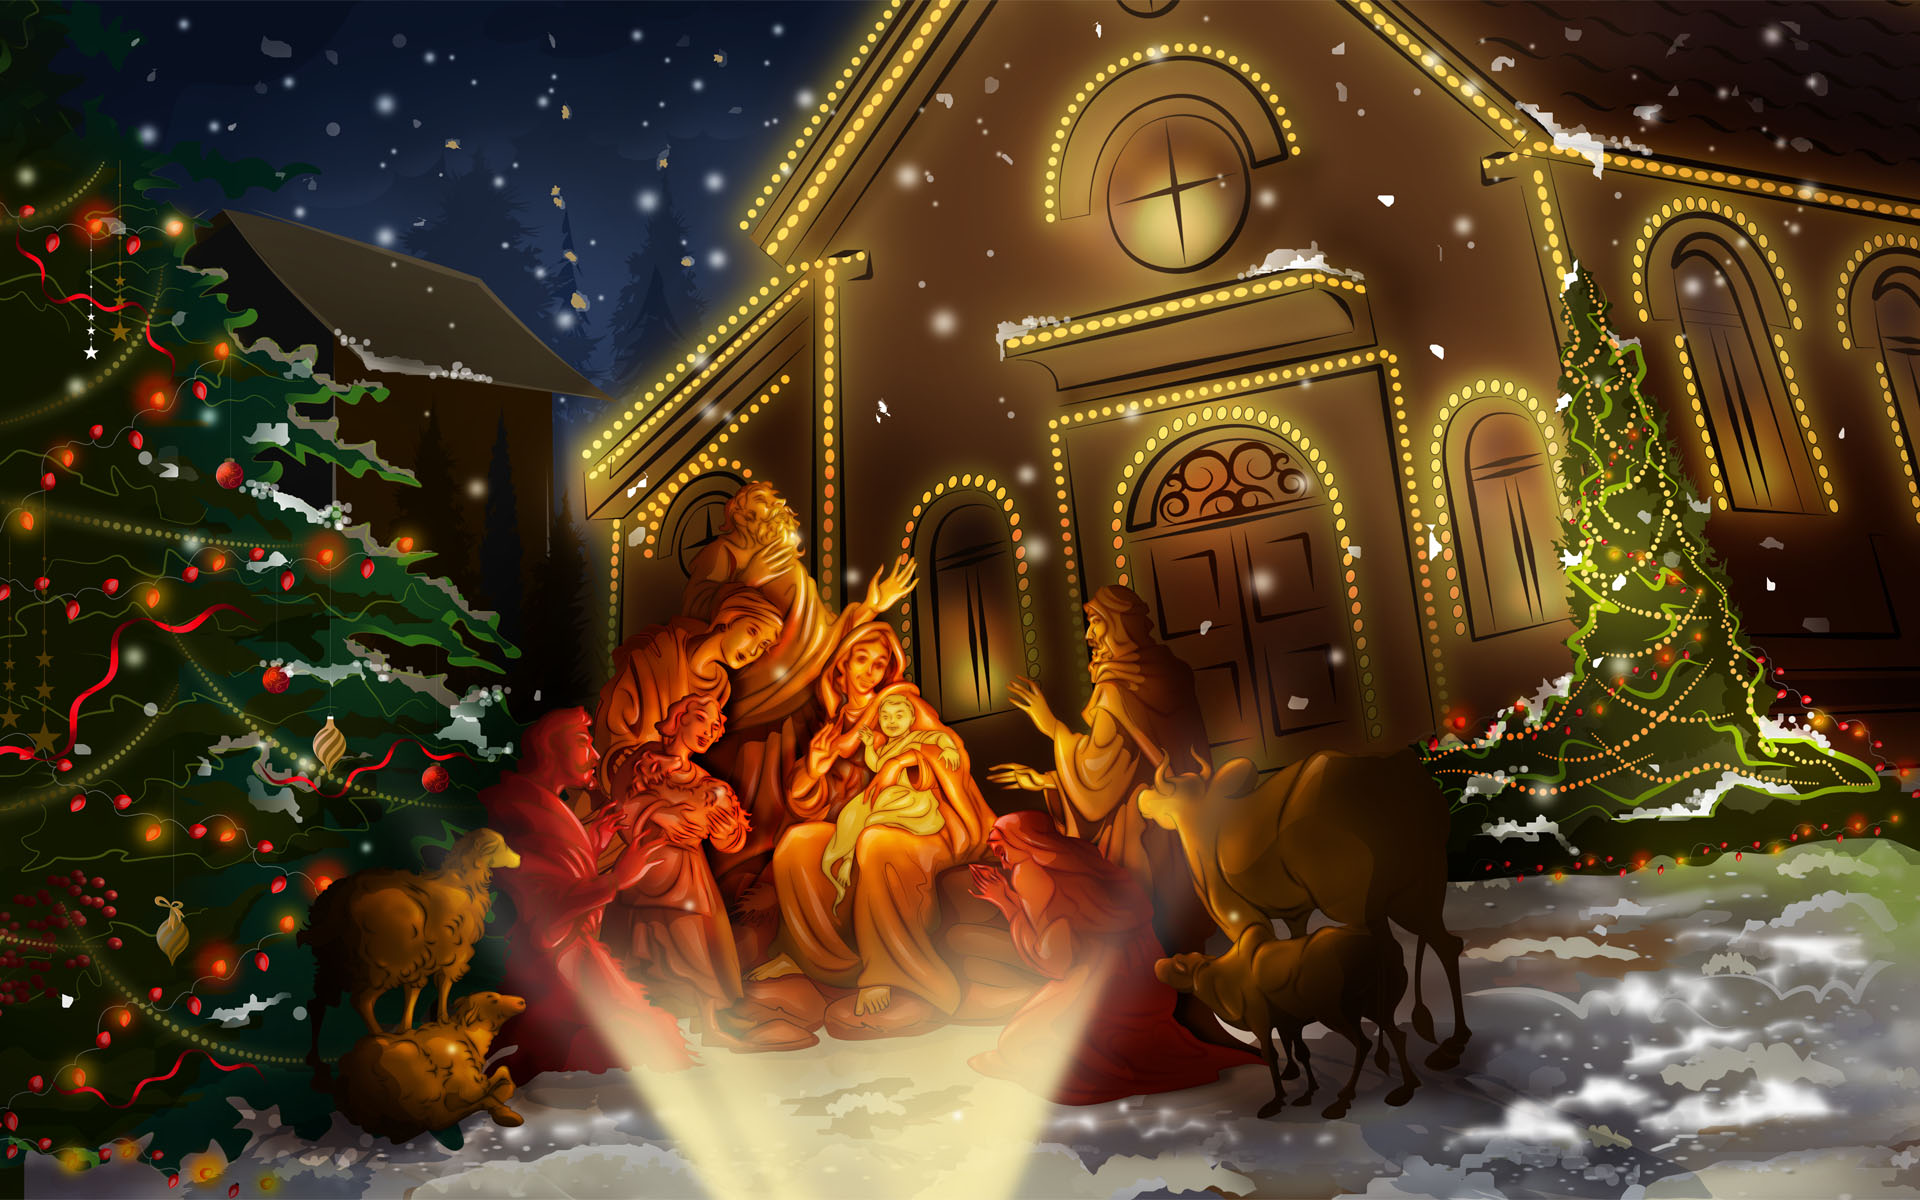 HD Wallpapers Celebrating Jesus Birth